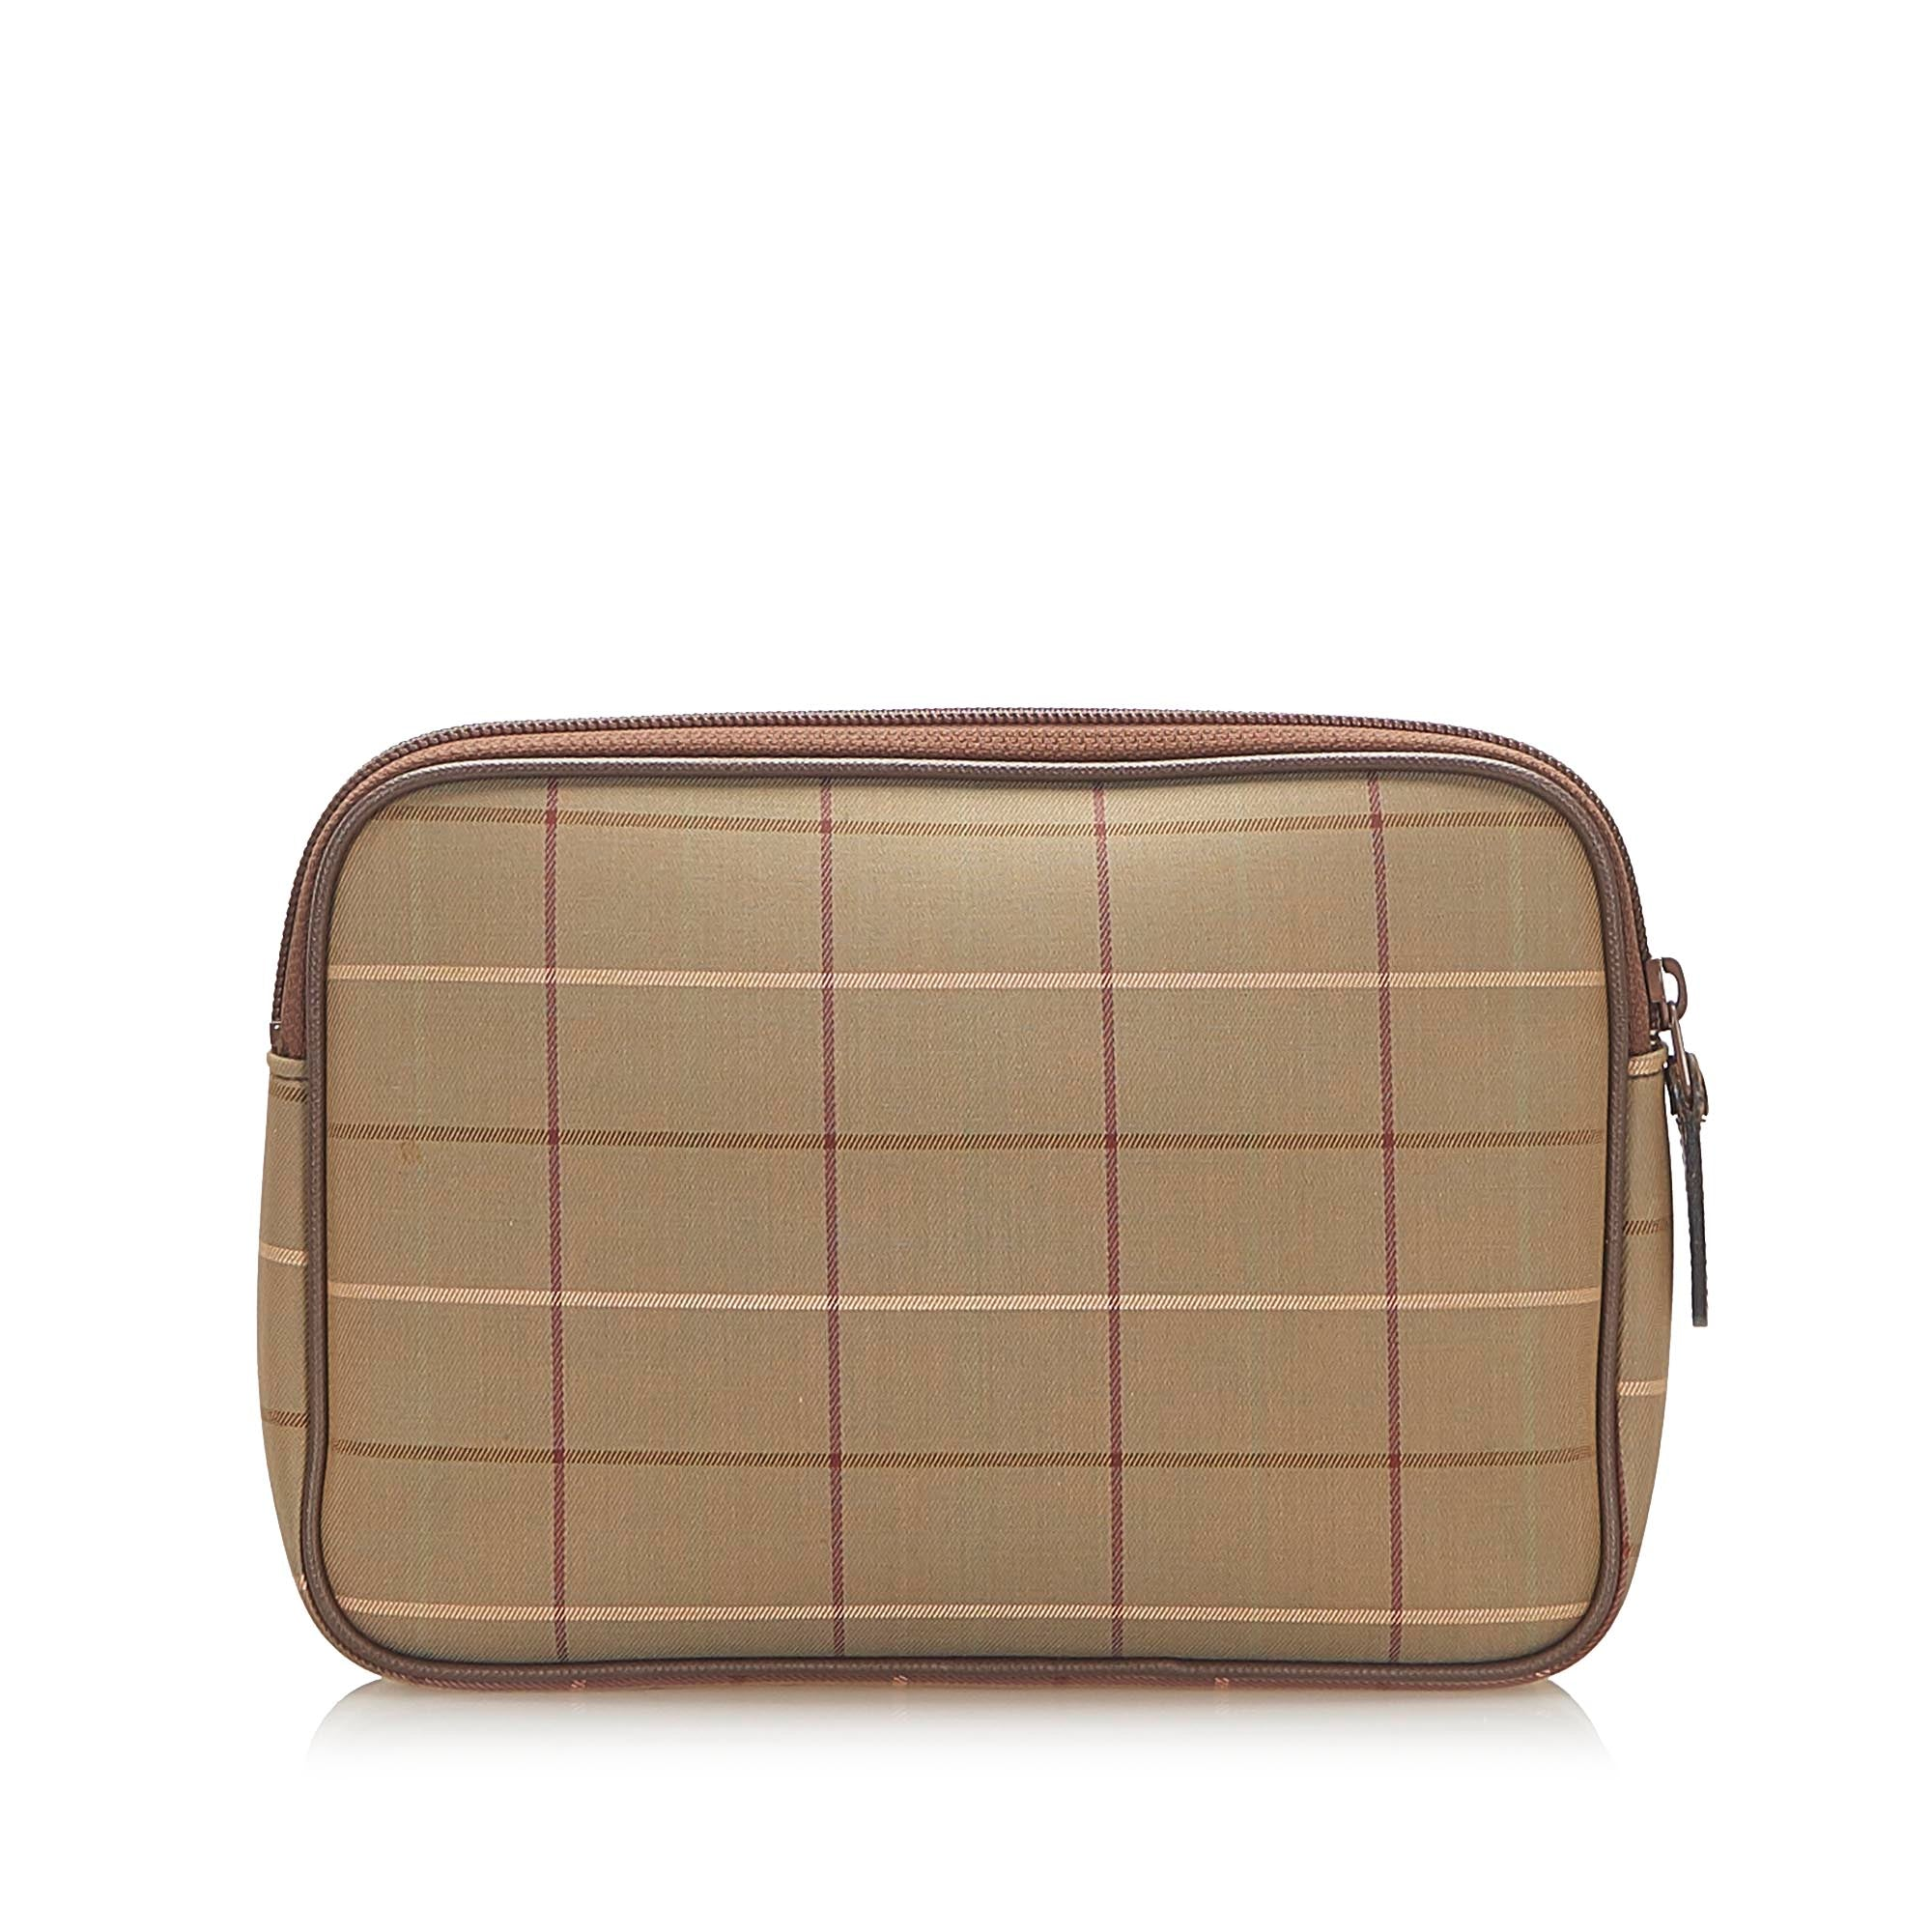 Burberry Brown Plaid Canvas Pouch